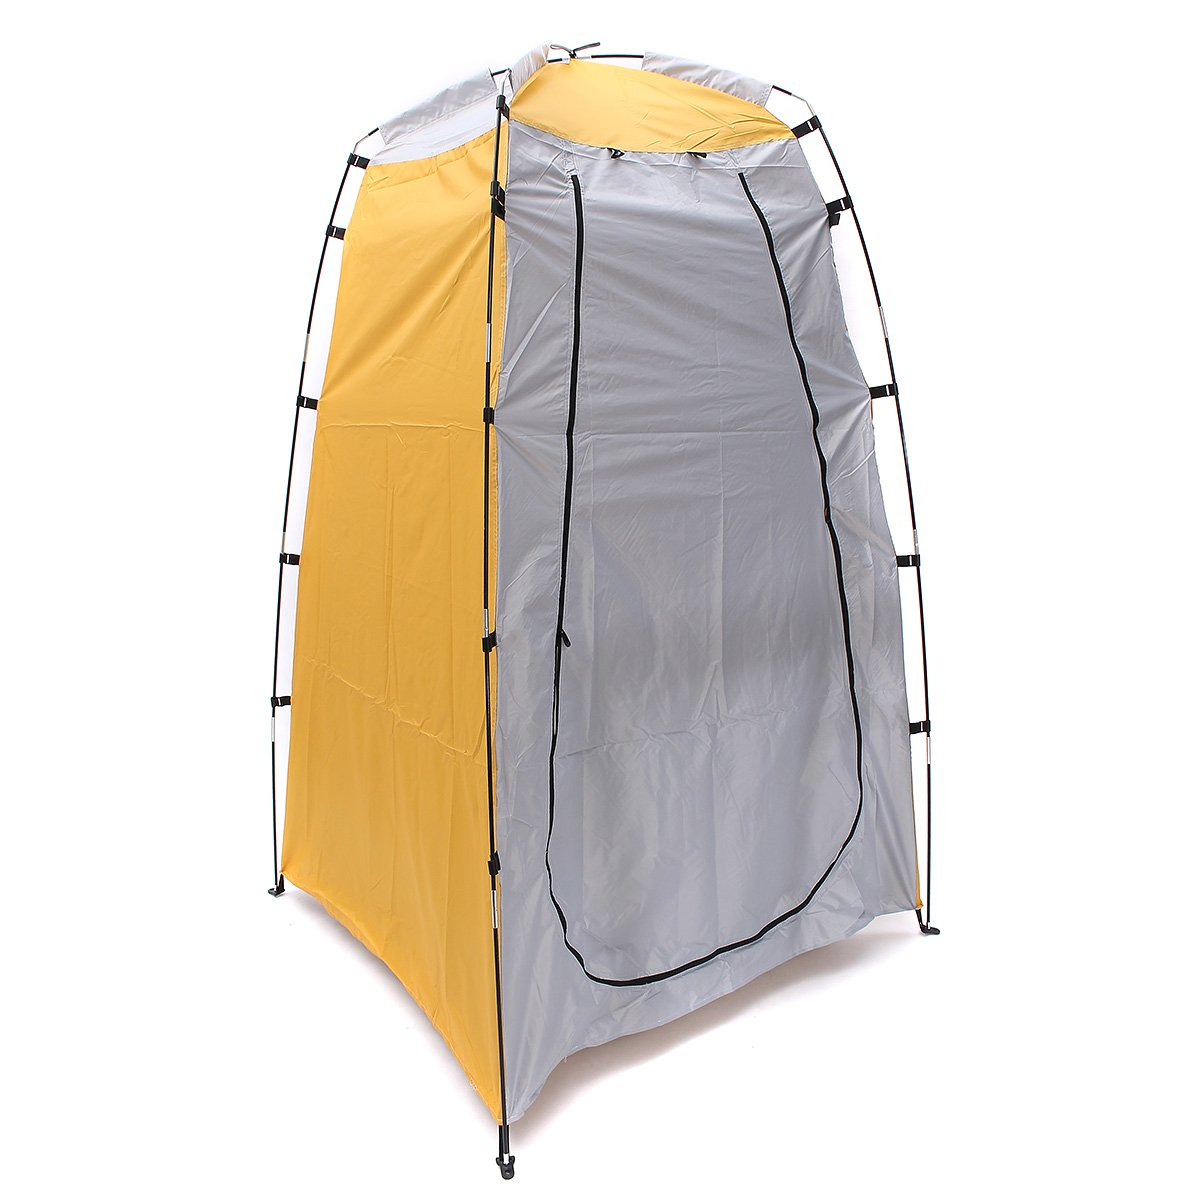 Protable Pop Up Outdoor-Privacy-Zelt Dressing Umkleideraum WC Camping Reise-Notfall